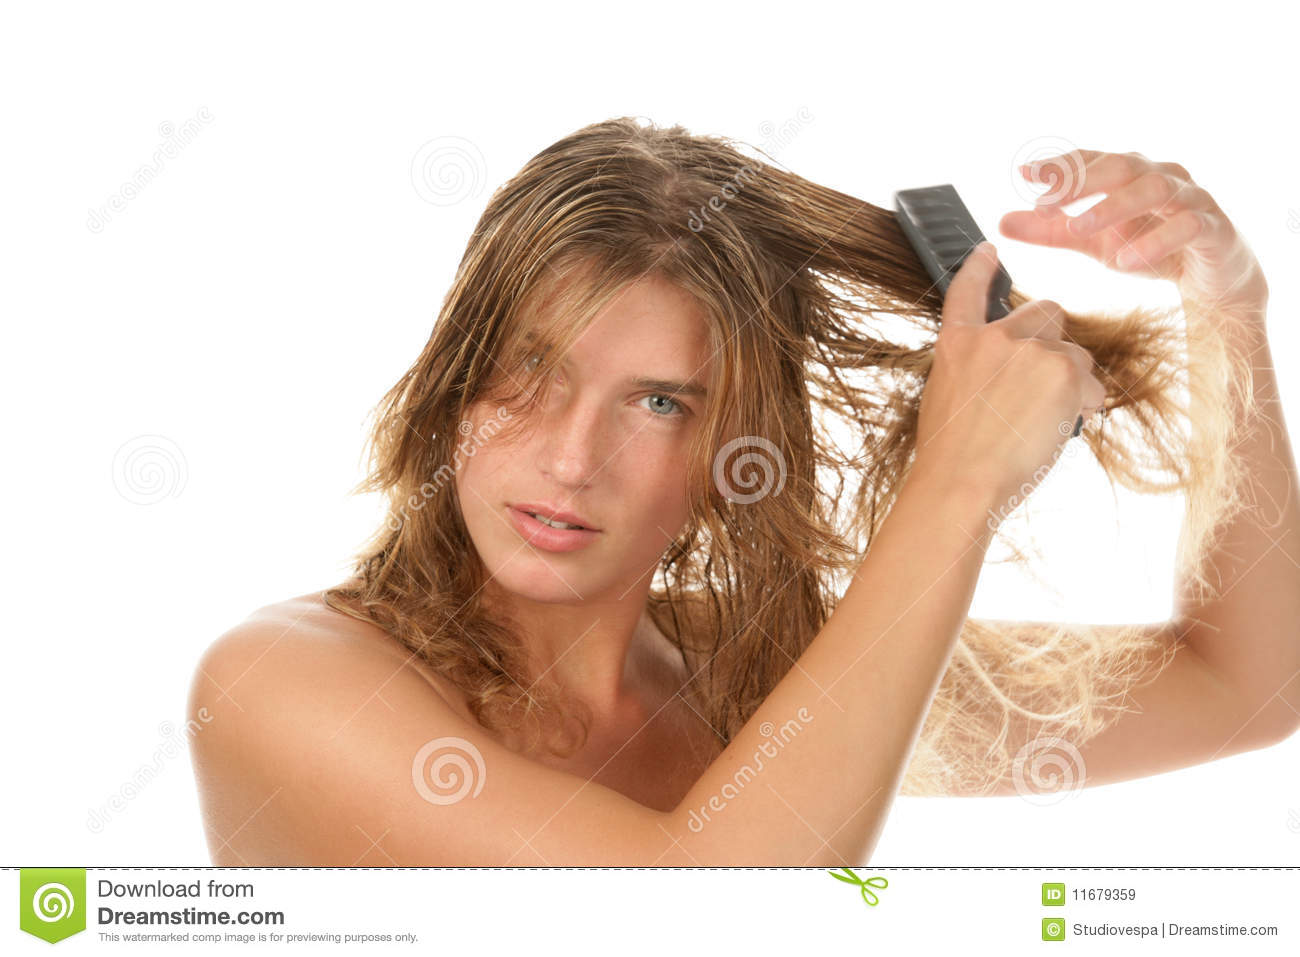 Amateur brushing her hair